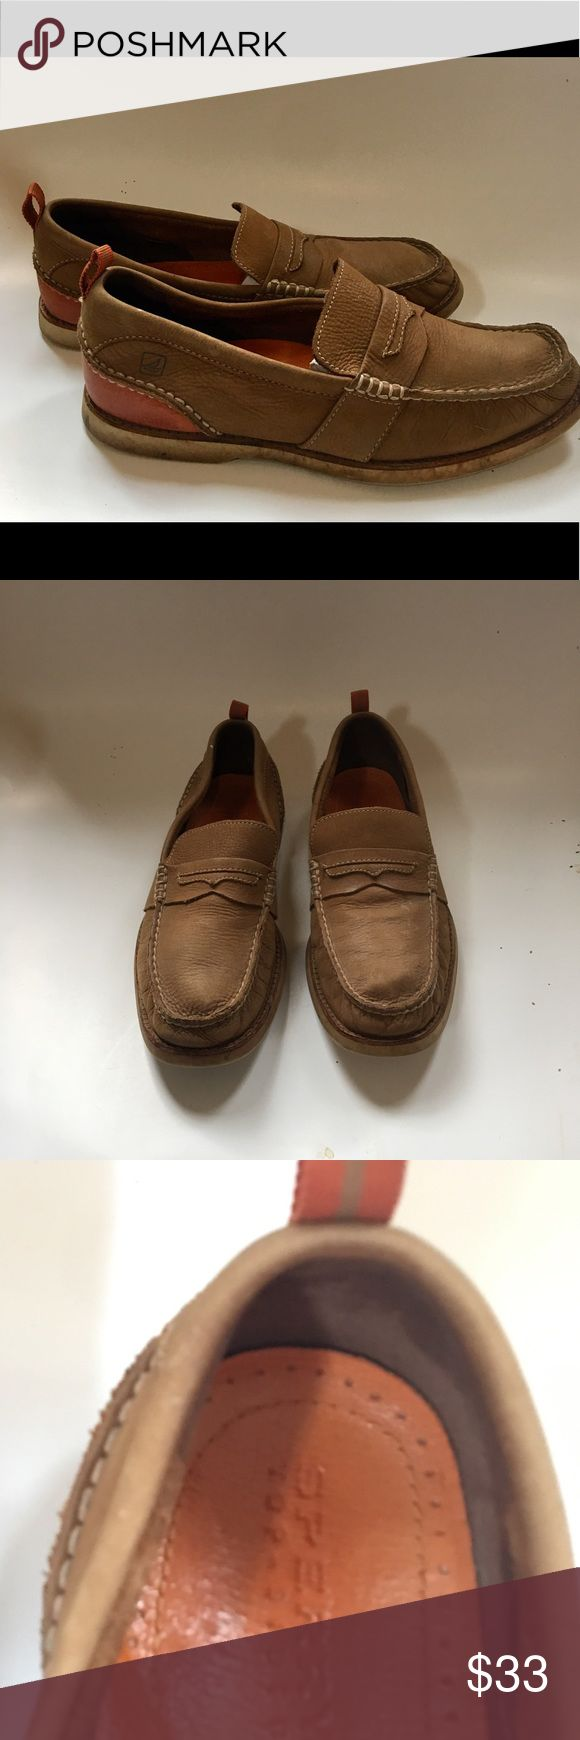 Sperry Top Sider Men's Penny Loafer Suede Sz. 9.5 Sperry Top Sider Men's Penny Loafer Suede Brown Boat Shoes Sz. 9.5.  Excellent used condition Sperry Shoes Loafers & Slip-Ons